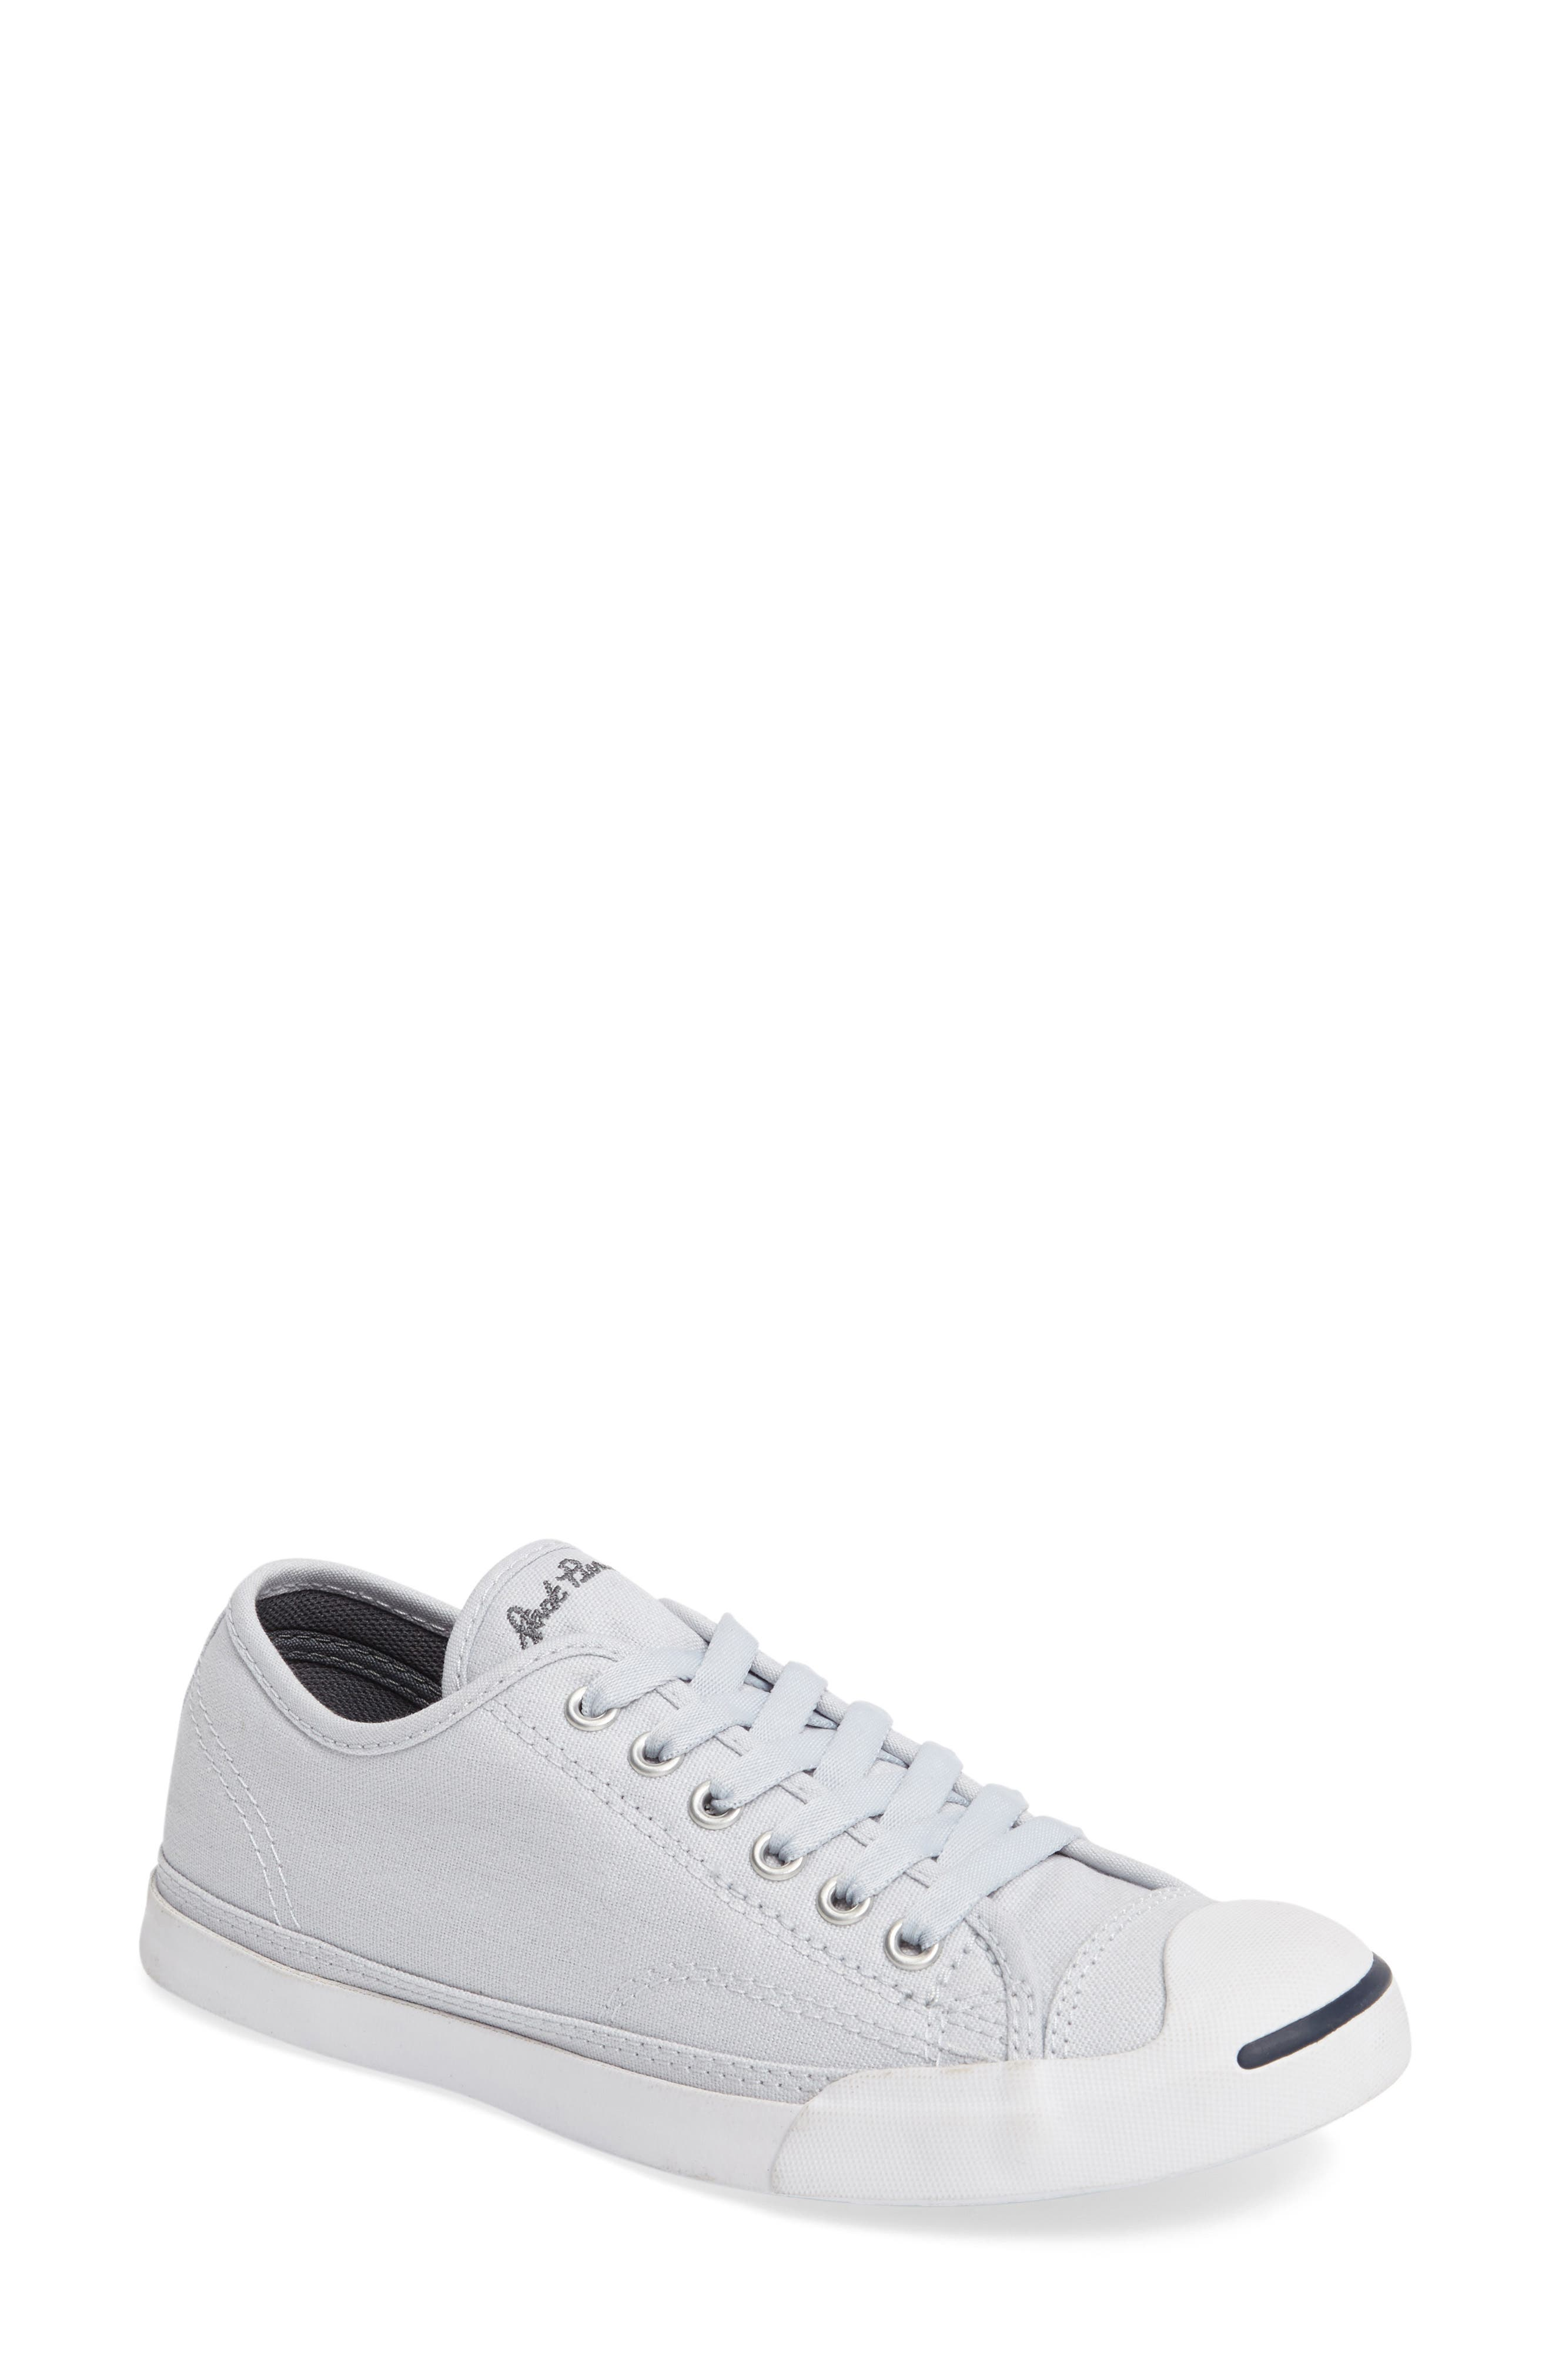 Jack Purcell Signature Ox Low Top Sneaker,                             Main thumbnail 1, color,